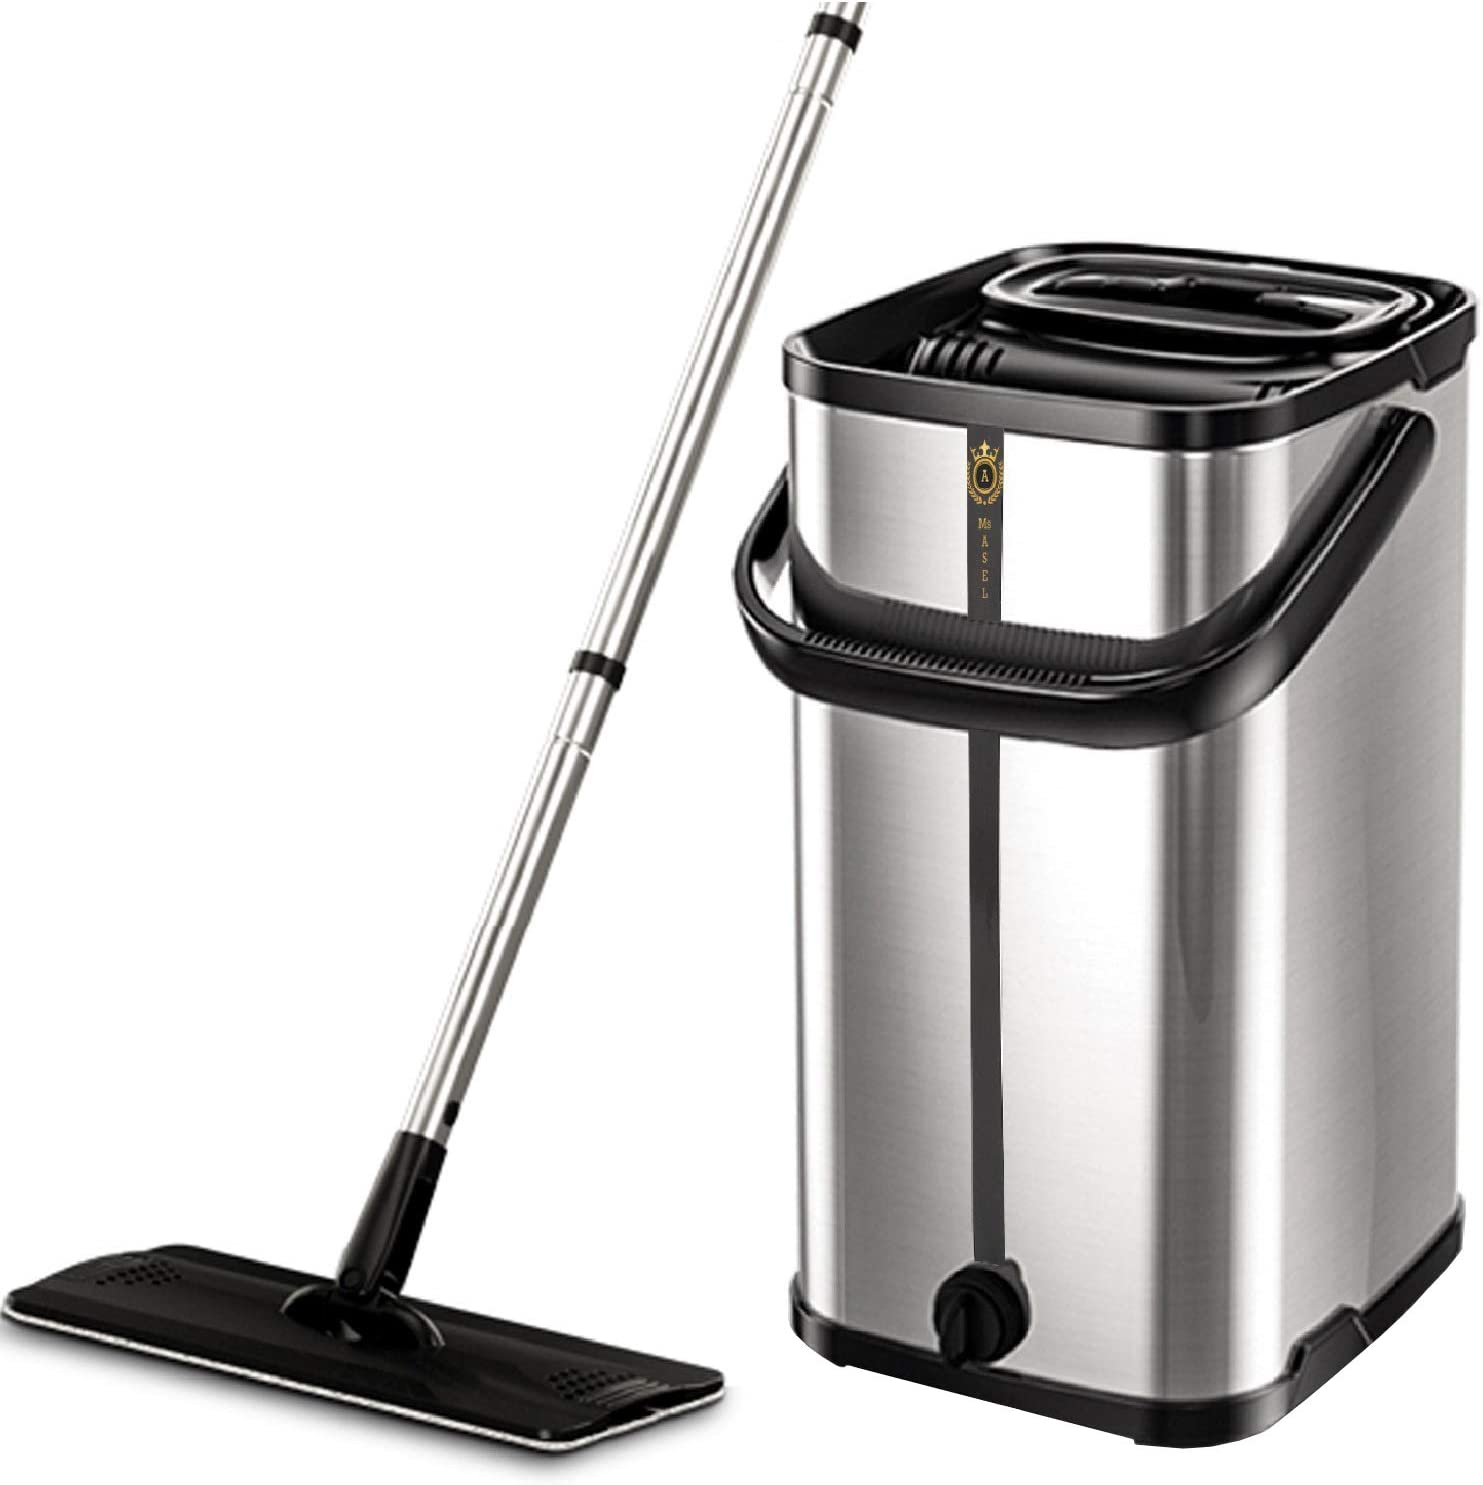 Squeeze Flat Floor Mop and Bucket Set, Stainless Steel Bucket and Handle, 2 Washable & Reusable Mop Pads, Professional Home and Kitchen Cleaner for Hardwood, Laminate, Tiles